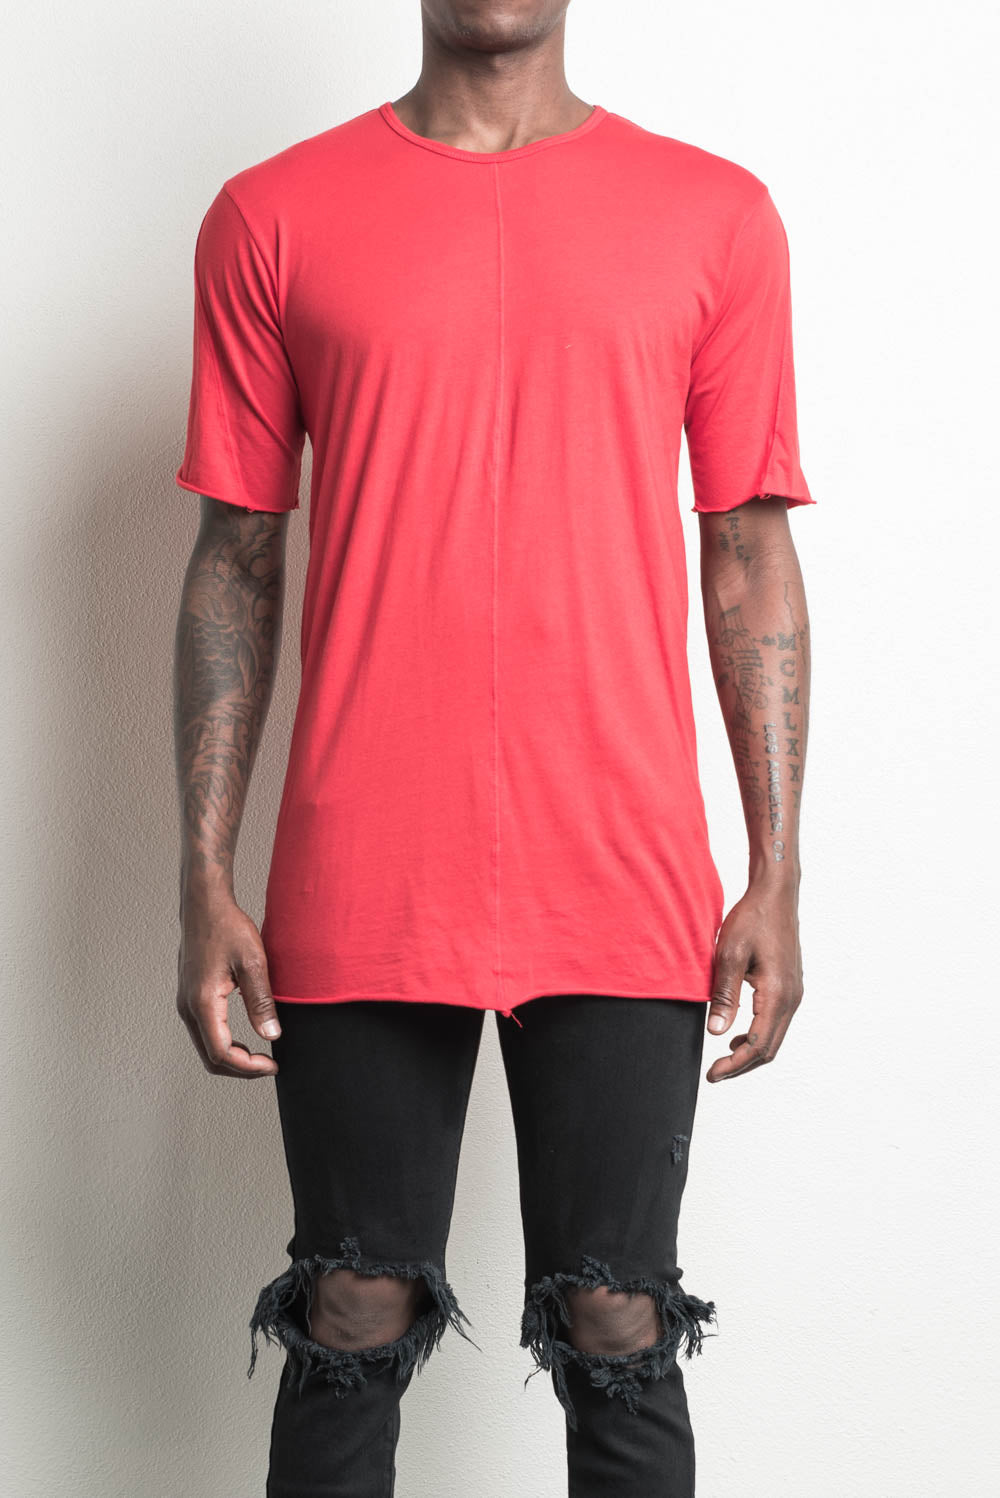 knomad crew / red